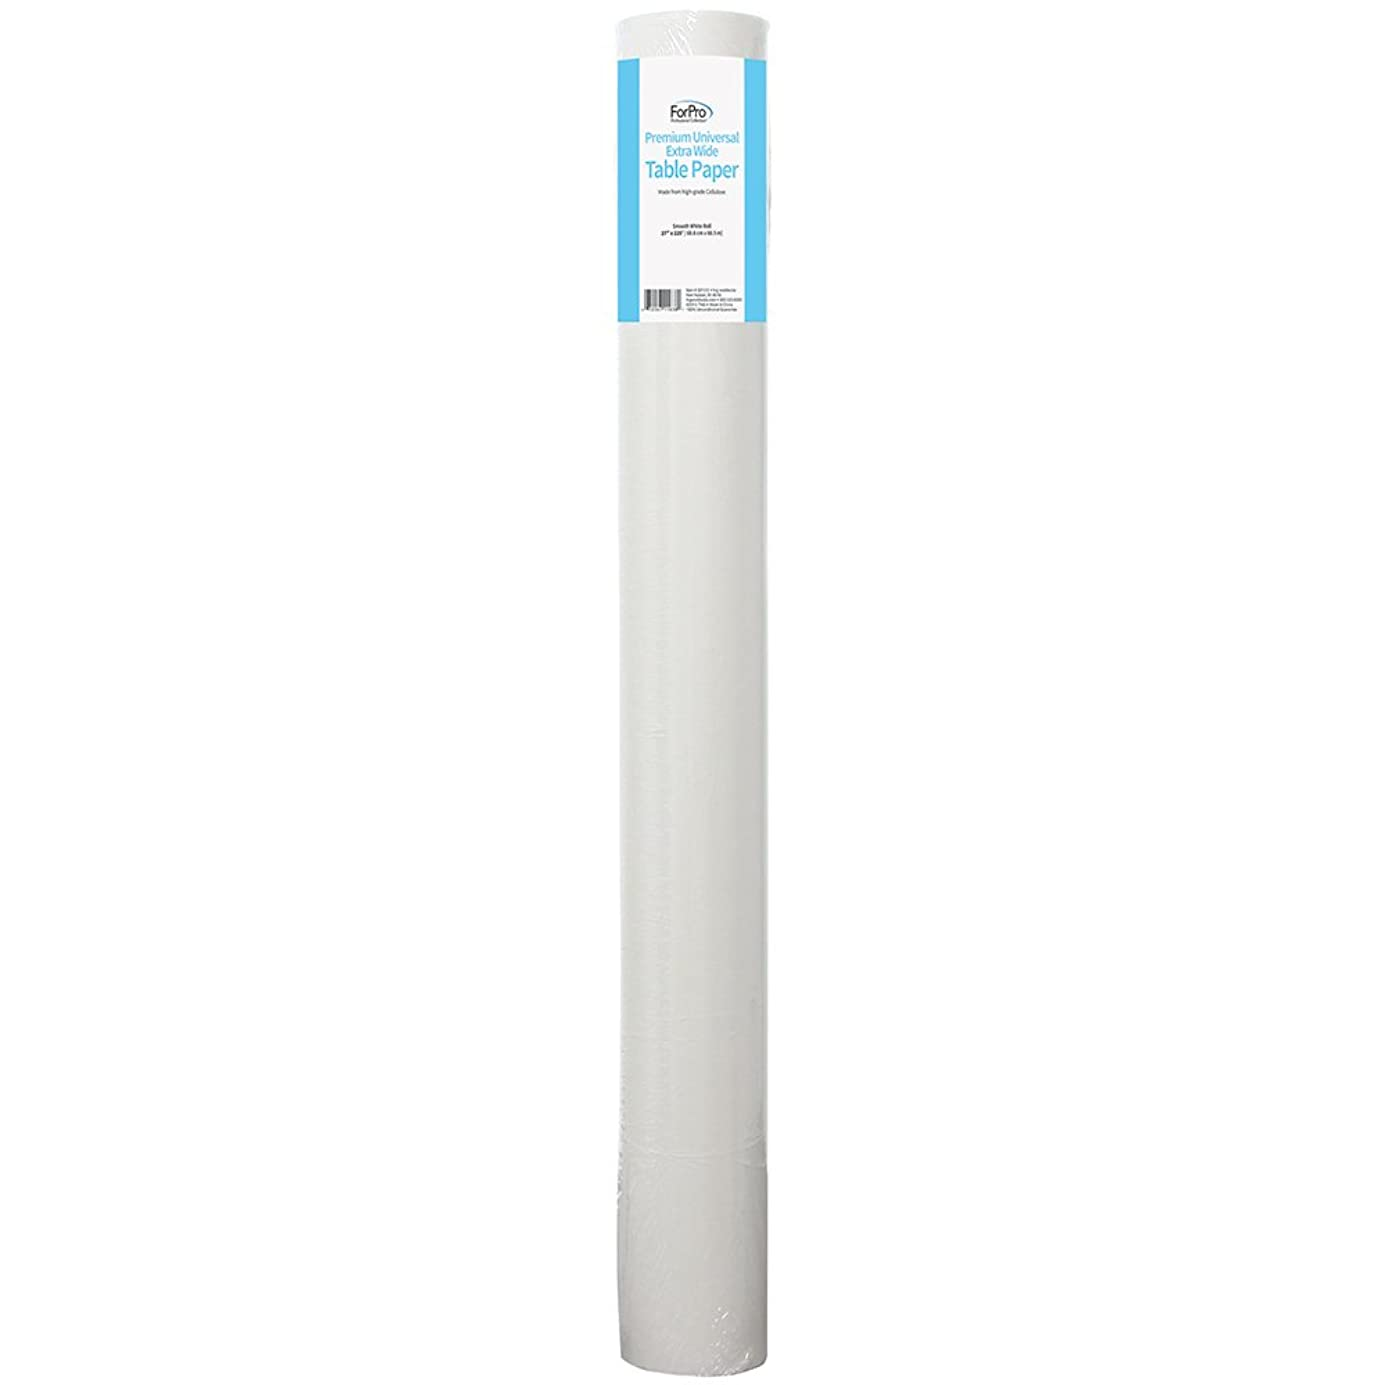 ForPro Premium Universal Extra Wide Table Paper, Smooth, Wrinkle-Resistant, 27